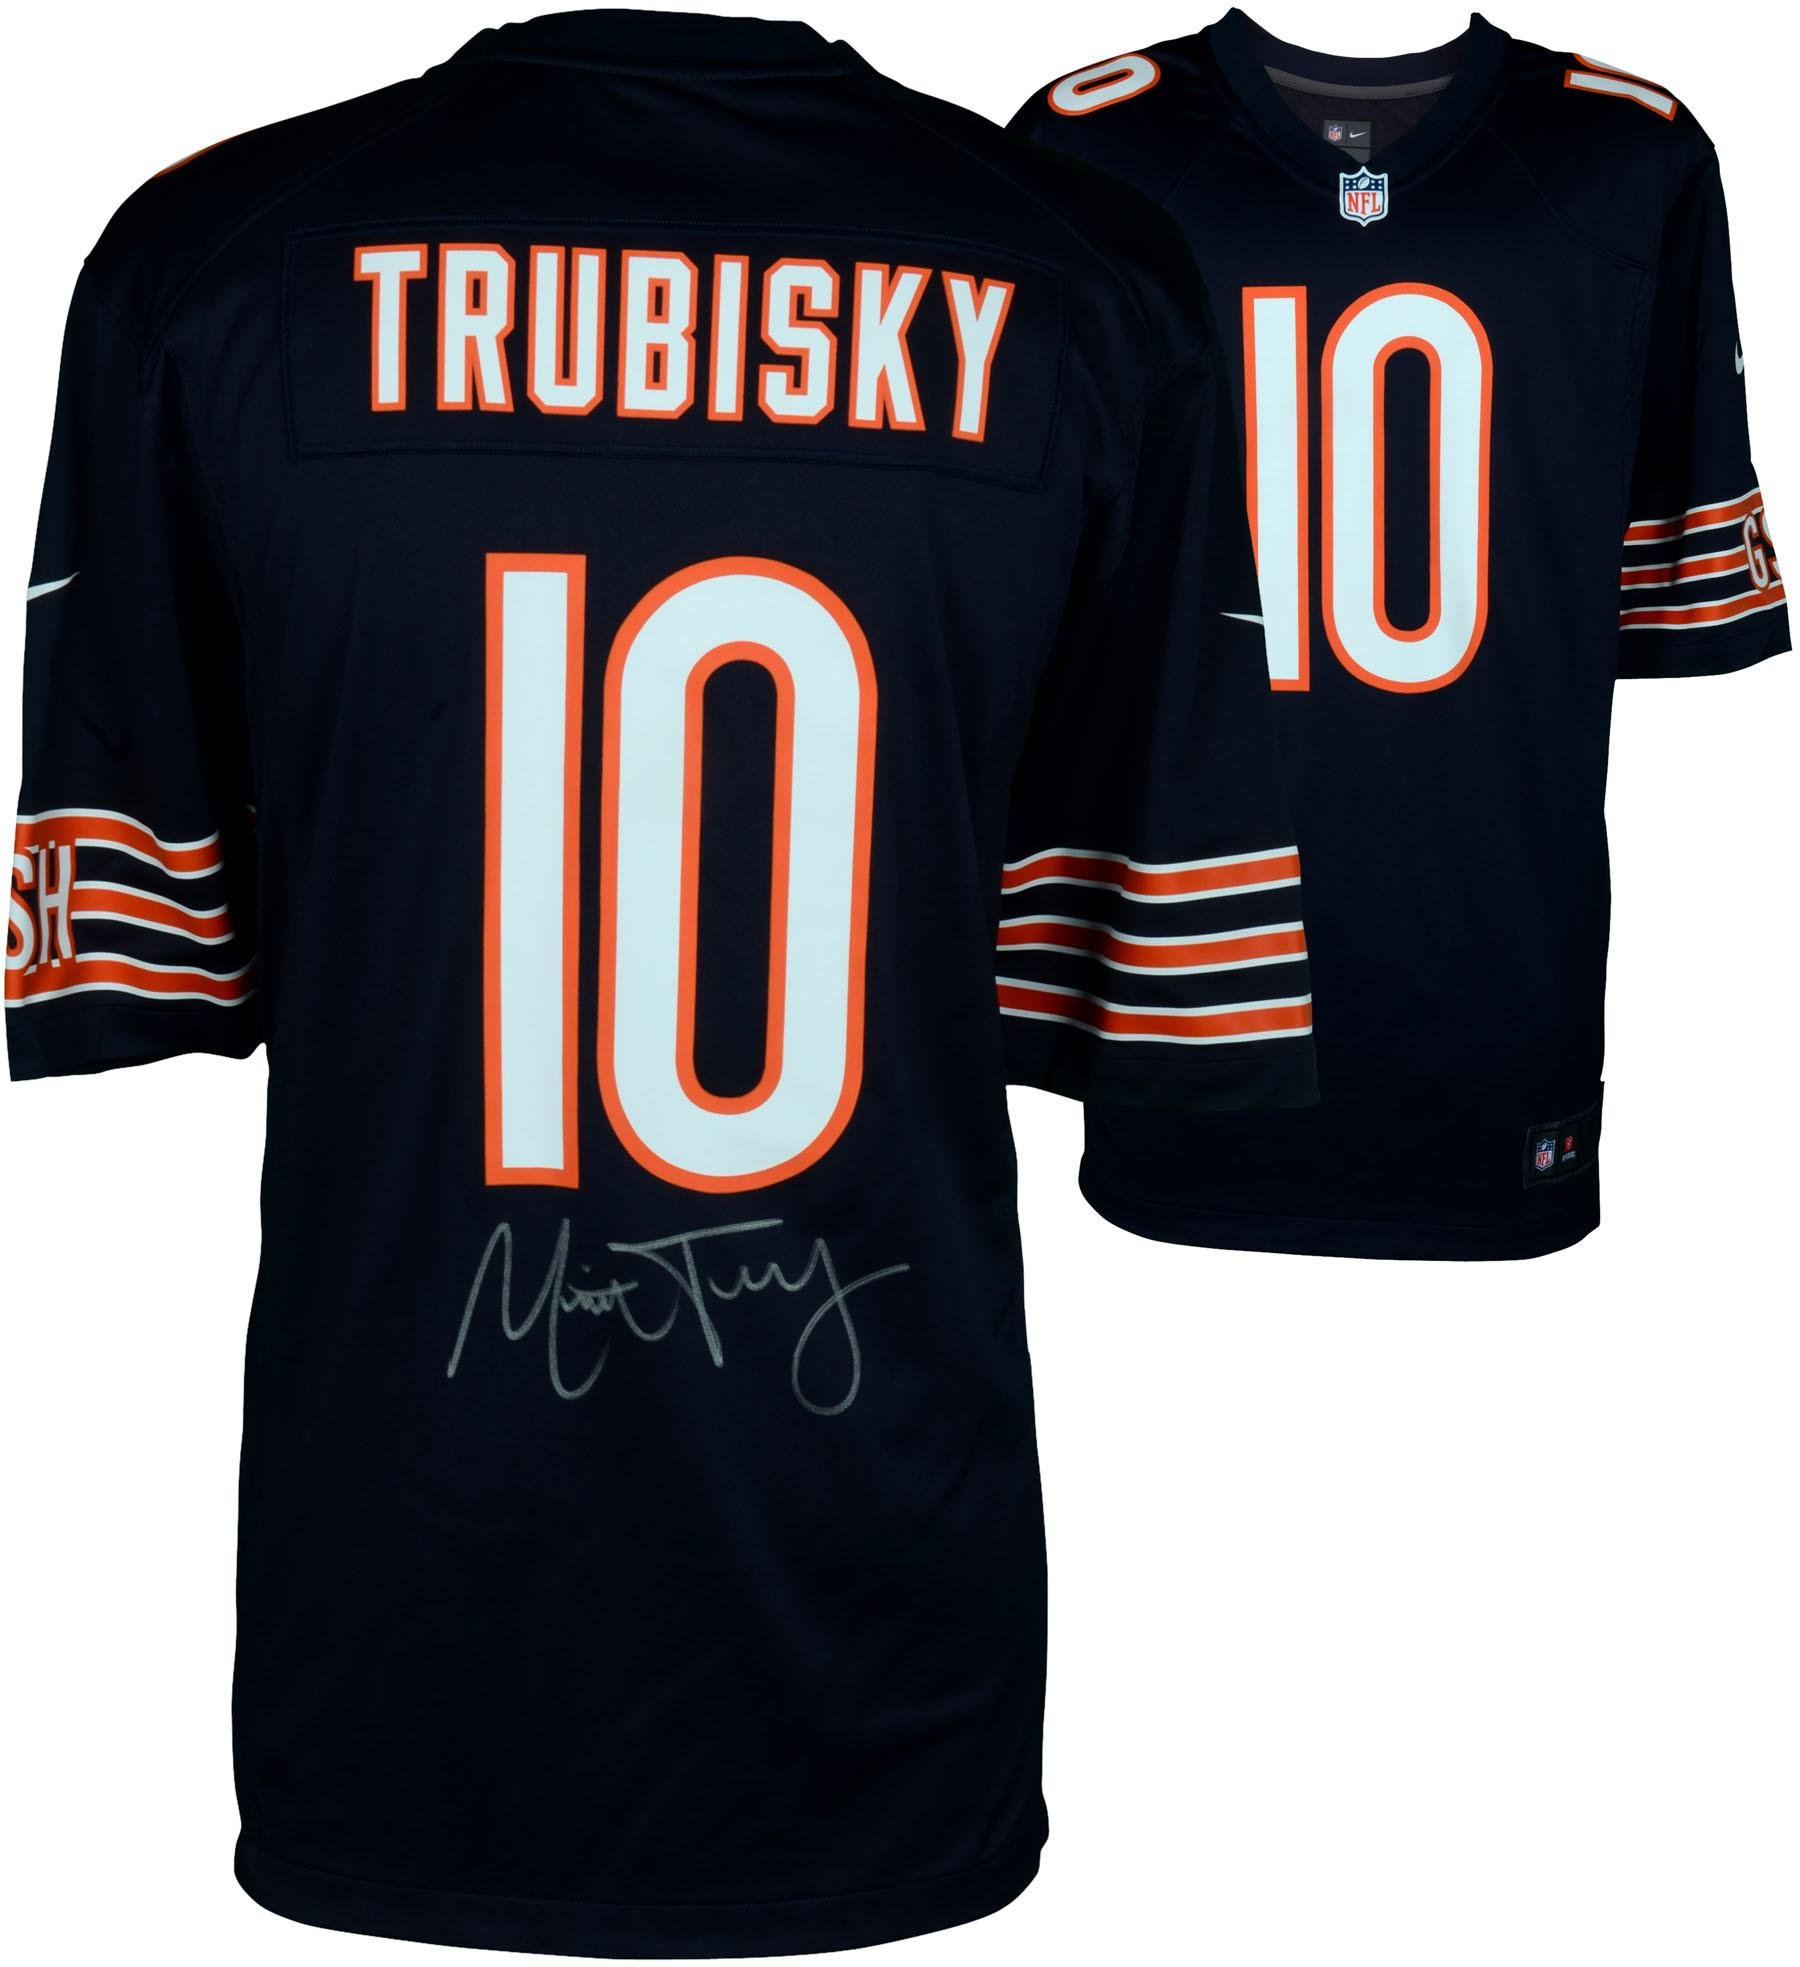 Mitchell Trubisky Chicago Bears Autographed Nike Navy Game Jersey Fanatics Authentic Certified Autographed NFL Jerseys